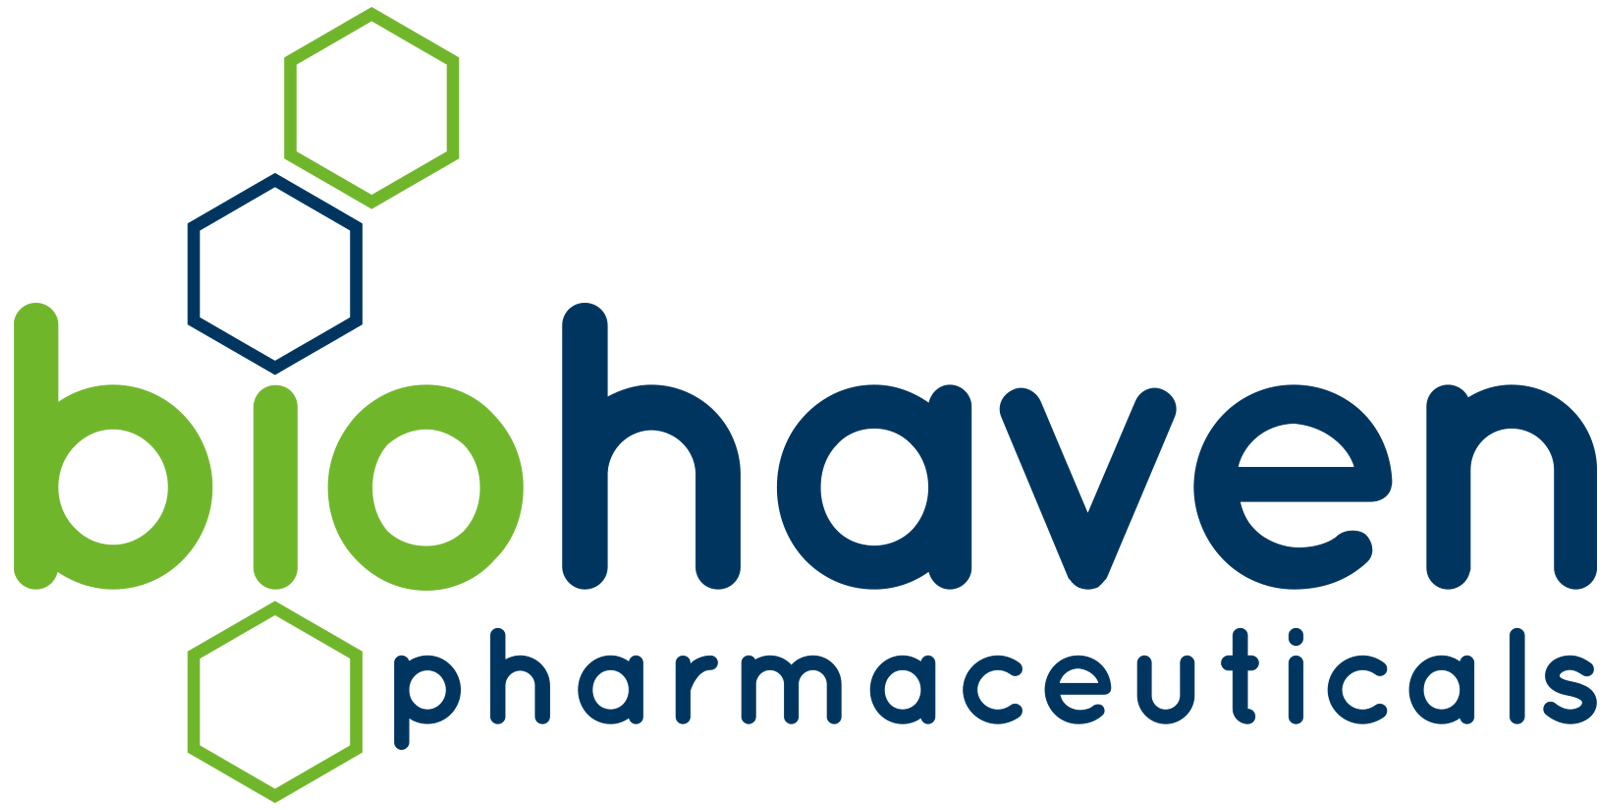 Biohaven Pharmaceuticals Announces FDA Has Accepted Its 505